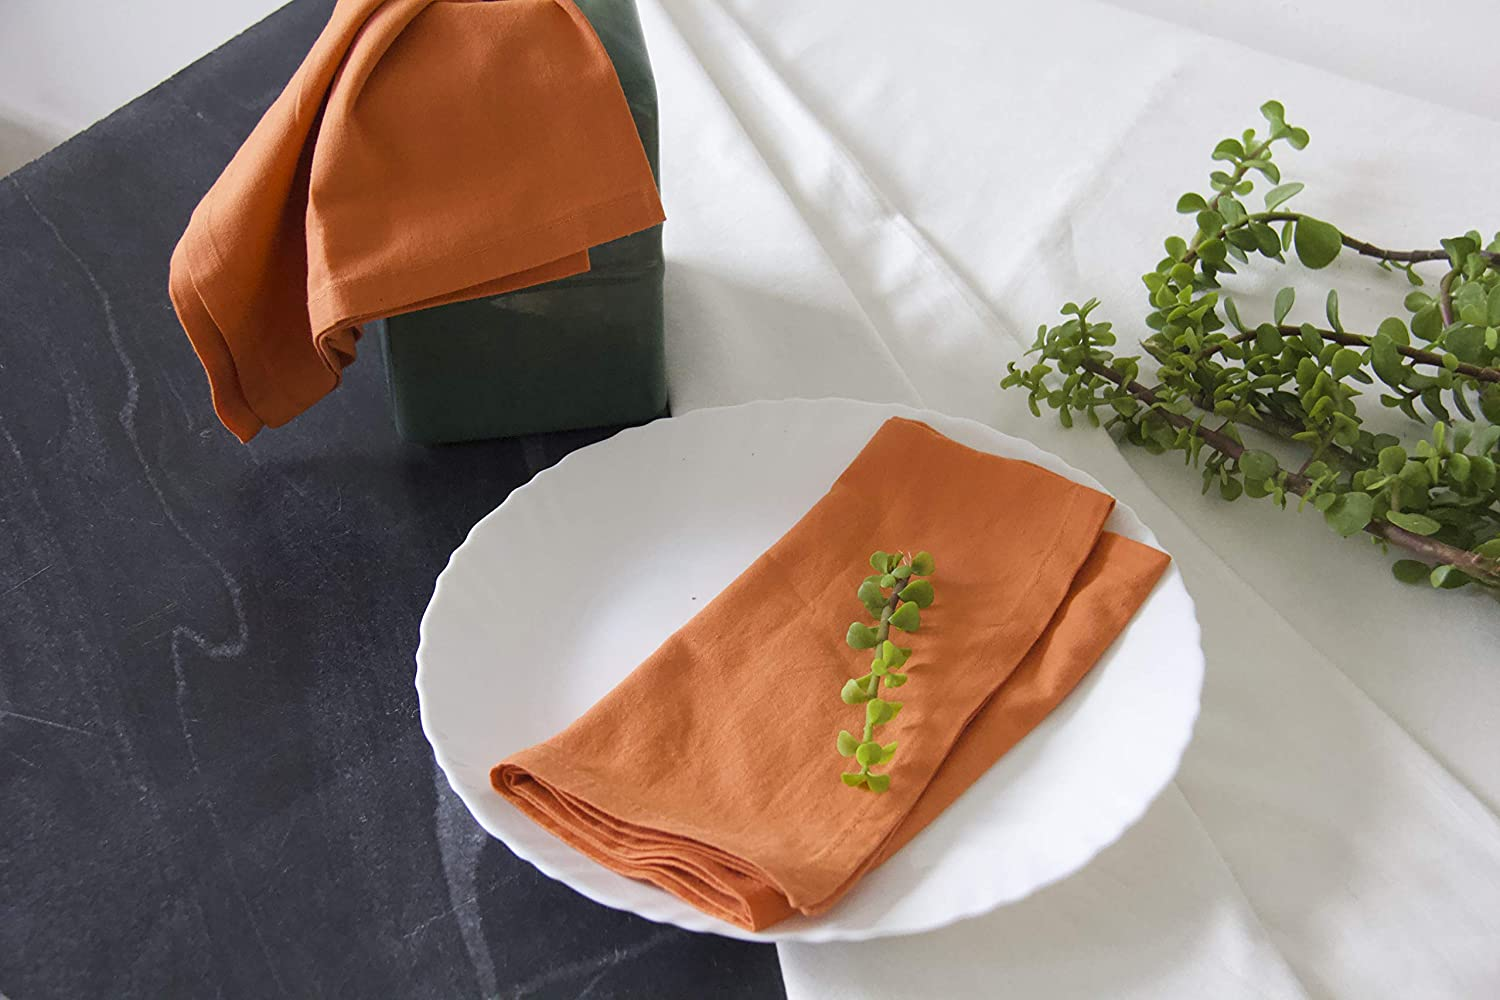 18x18 Inches Reusable Linens For Dinner Weddings Events 100 Natural Taran Orange Cotton Dinner Napkins Set Of 12